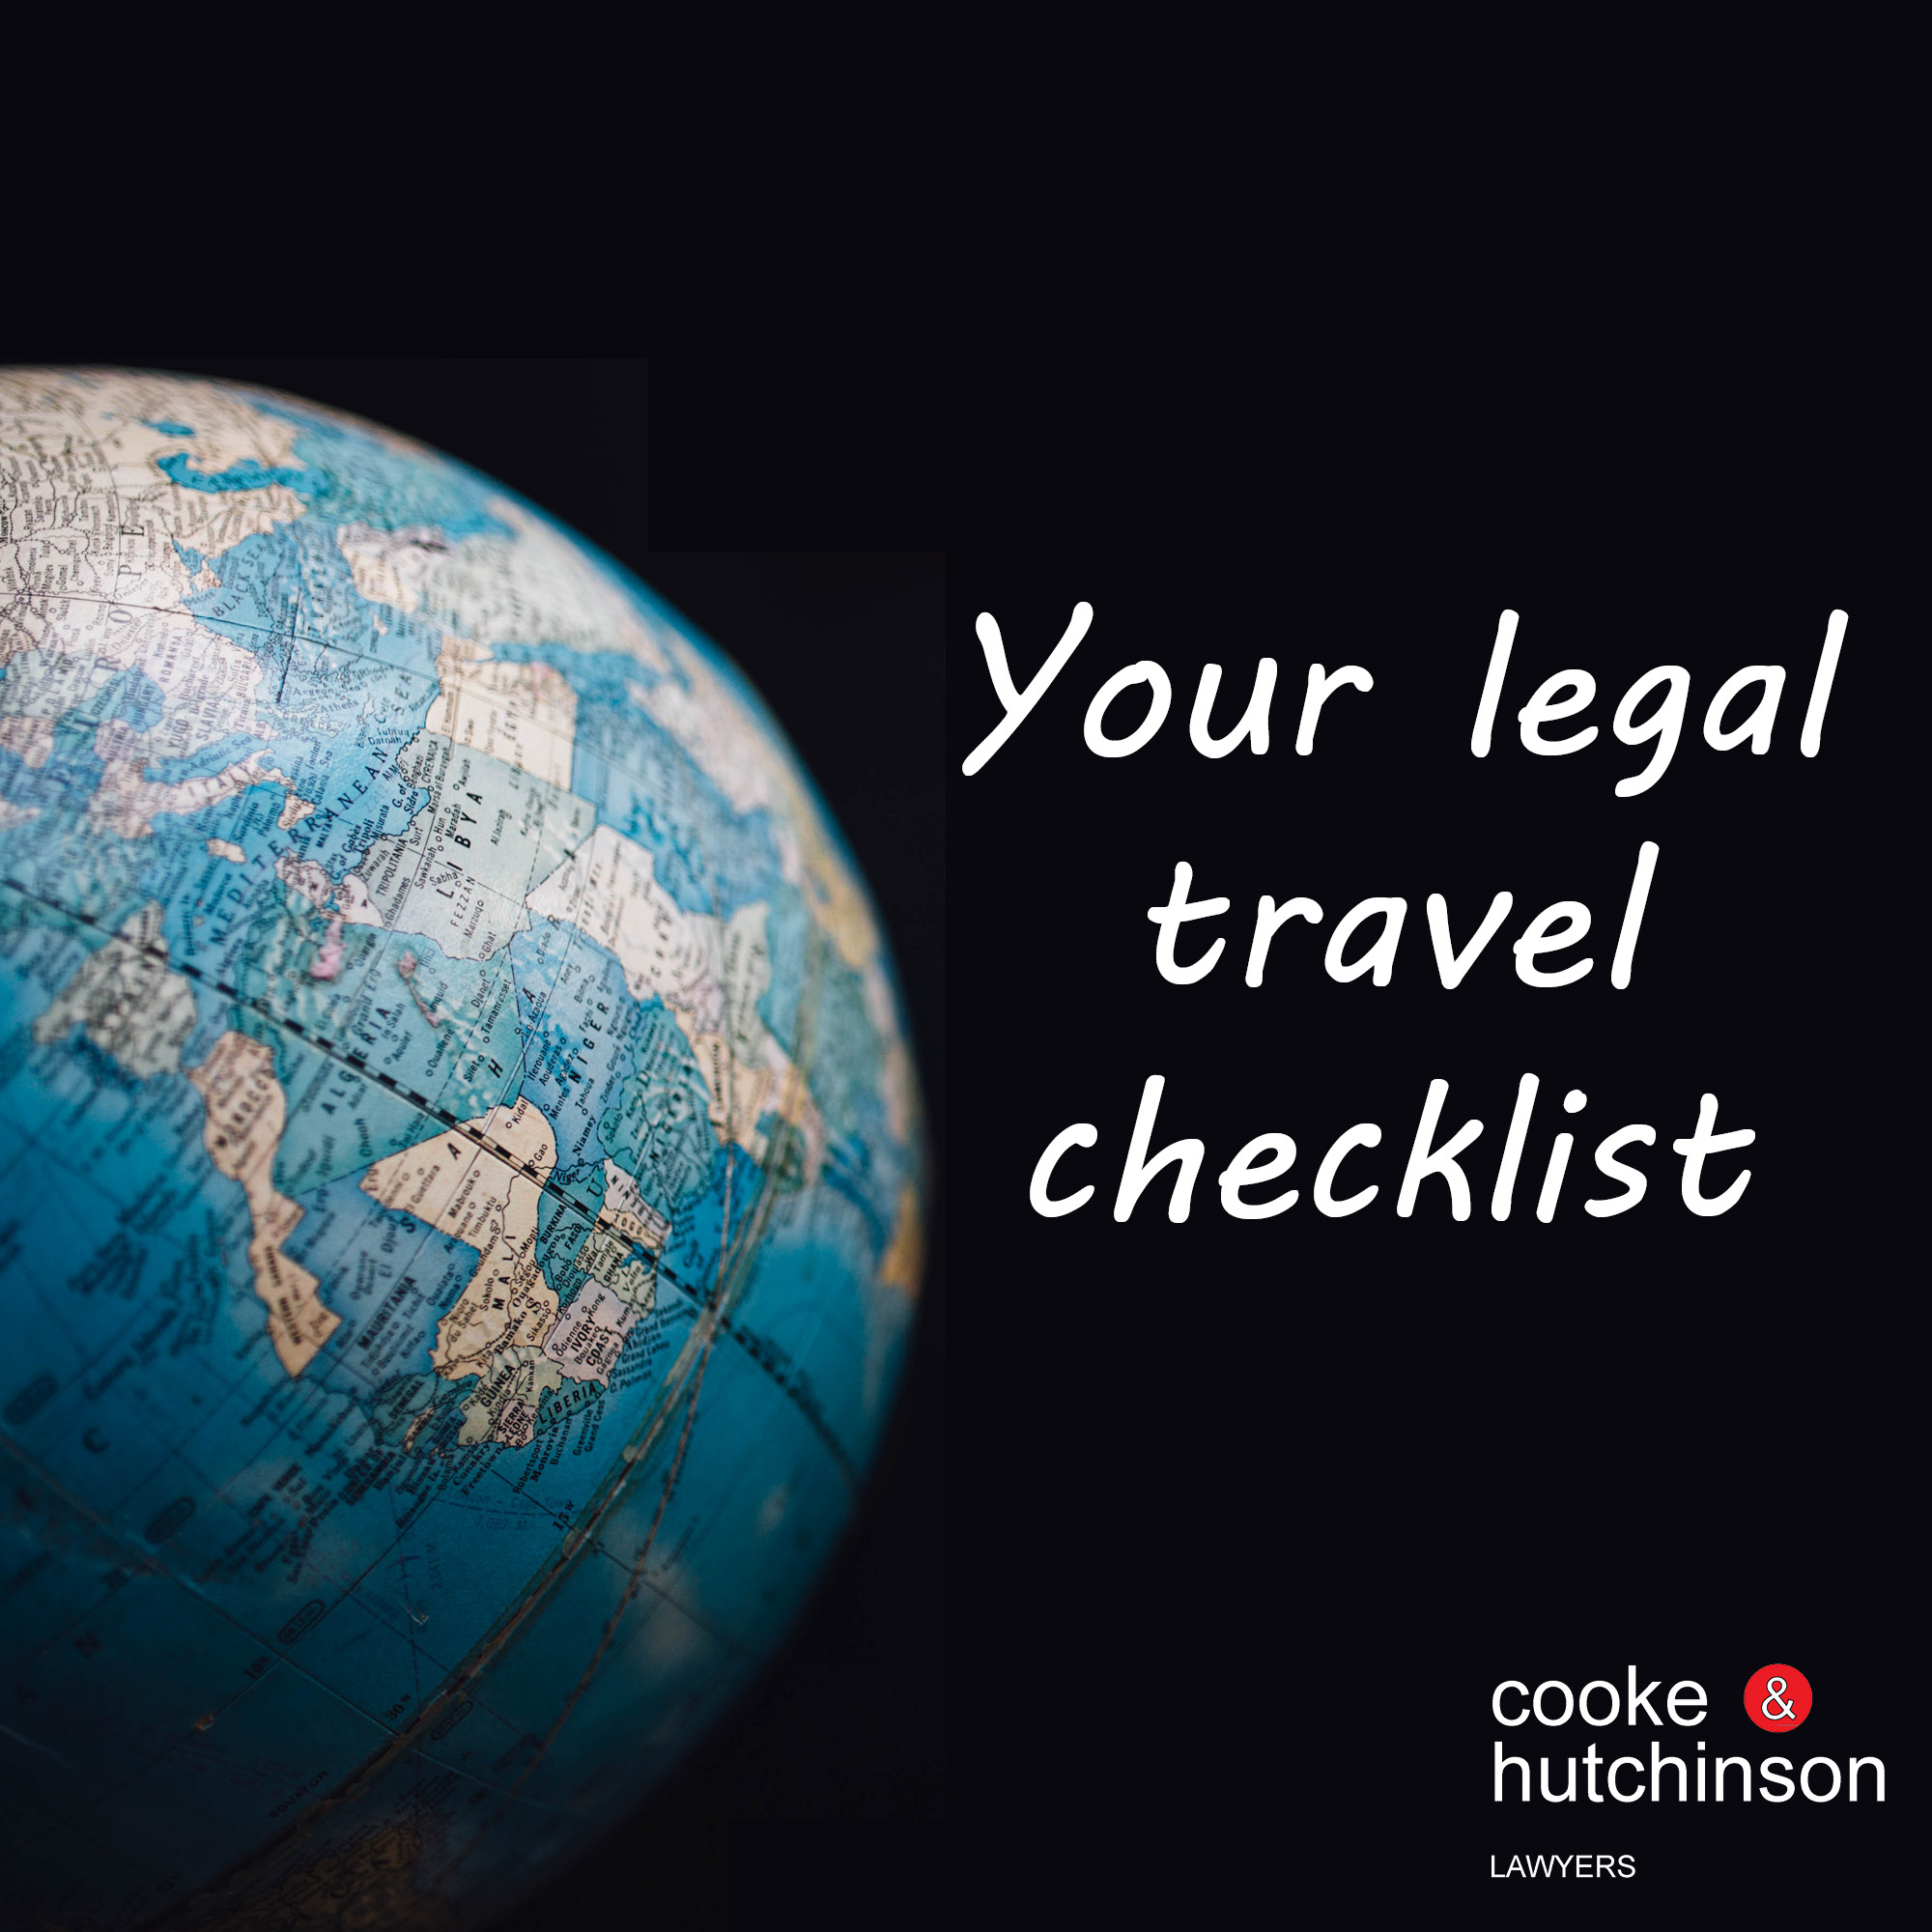 legal travel check list social image